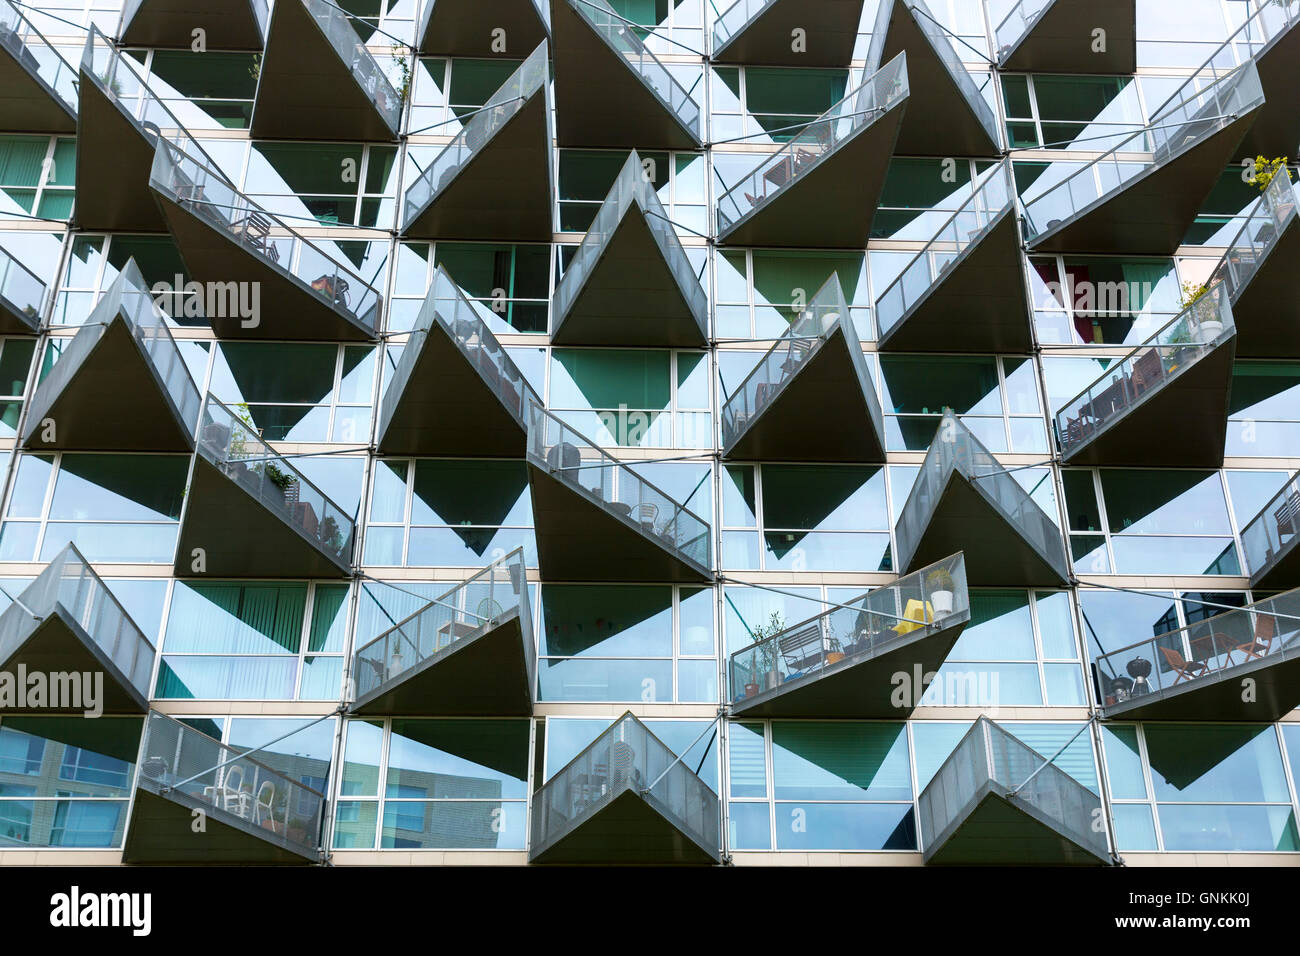 Glass balcony modern architecture new high rise homes development Orestads Boulevard in Orestad City area, Copenhagen, Stock Photo